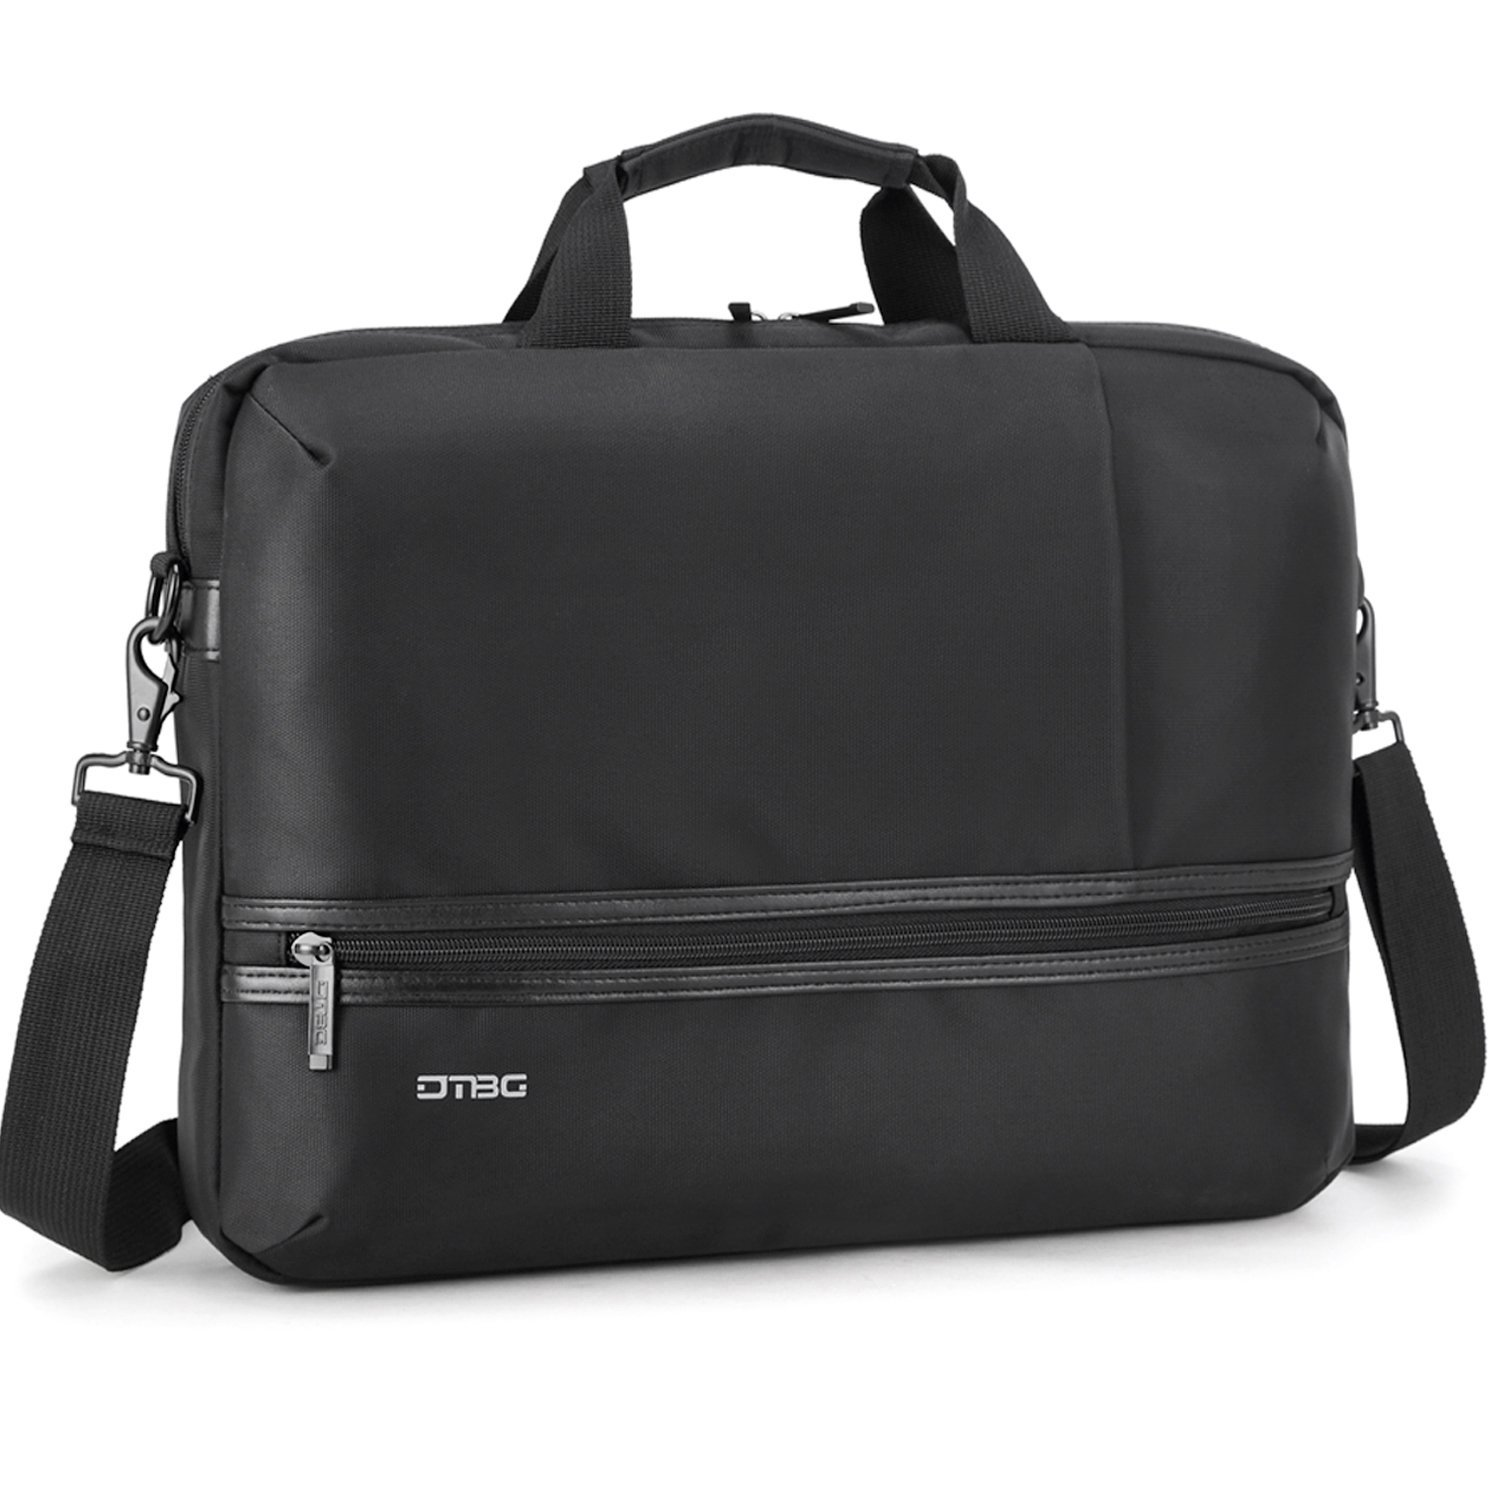 452b94b8aeb3 Cheap Asus Laptop Bag 15 6, find Asus Laptop Bag 15 6 deals on line ...